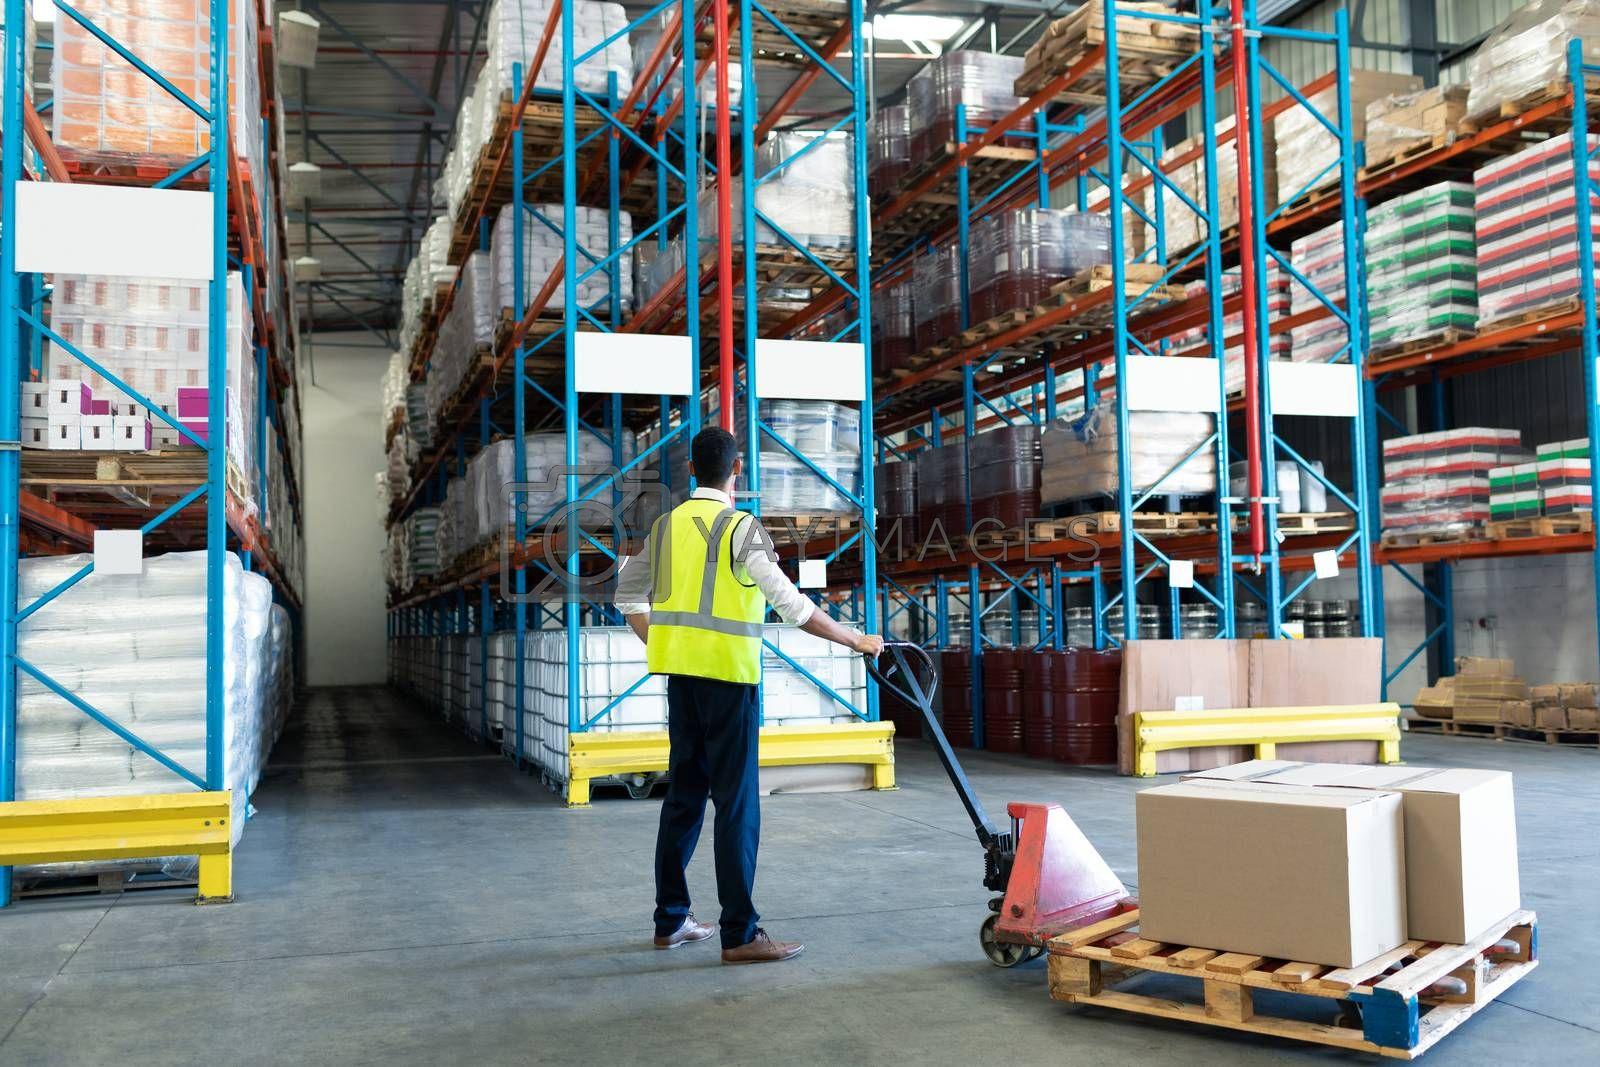 Rear view of Caucasian male staff using pallet jack in warehouse. This is a freight transportation and distribution warehouse. Industrial and industrial workers concept